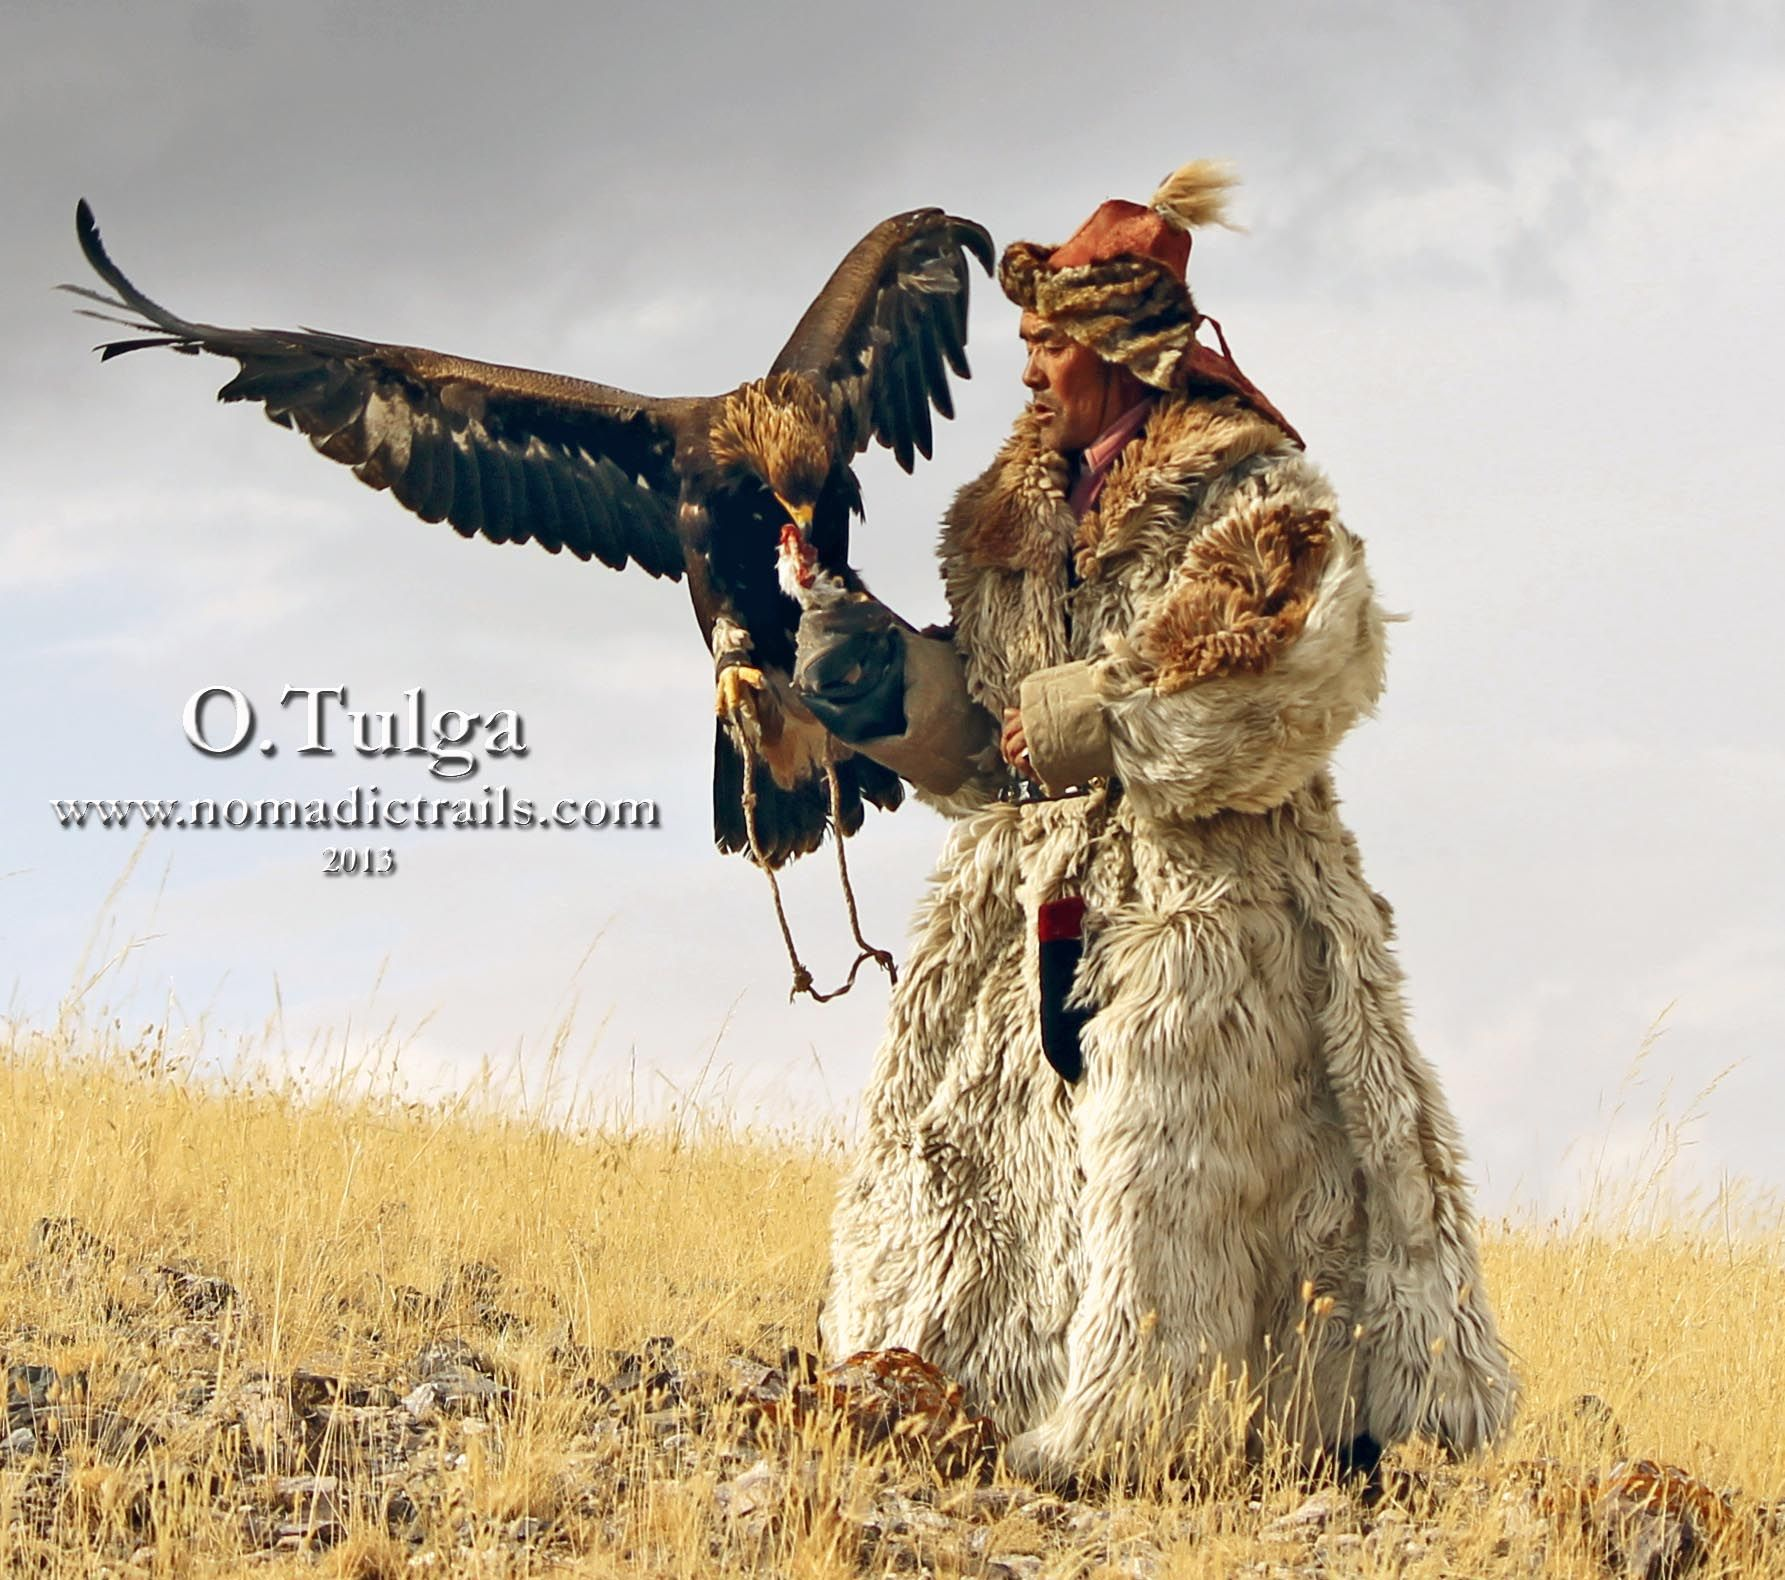 eagle hunting has been practiced in central asia for thousands of